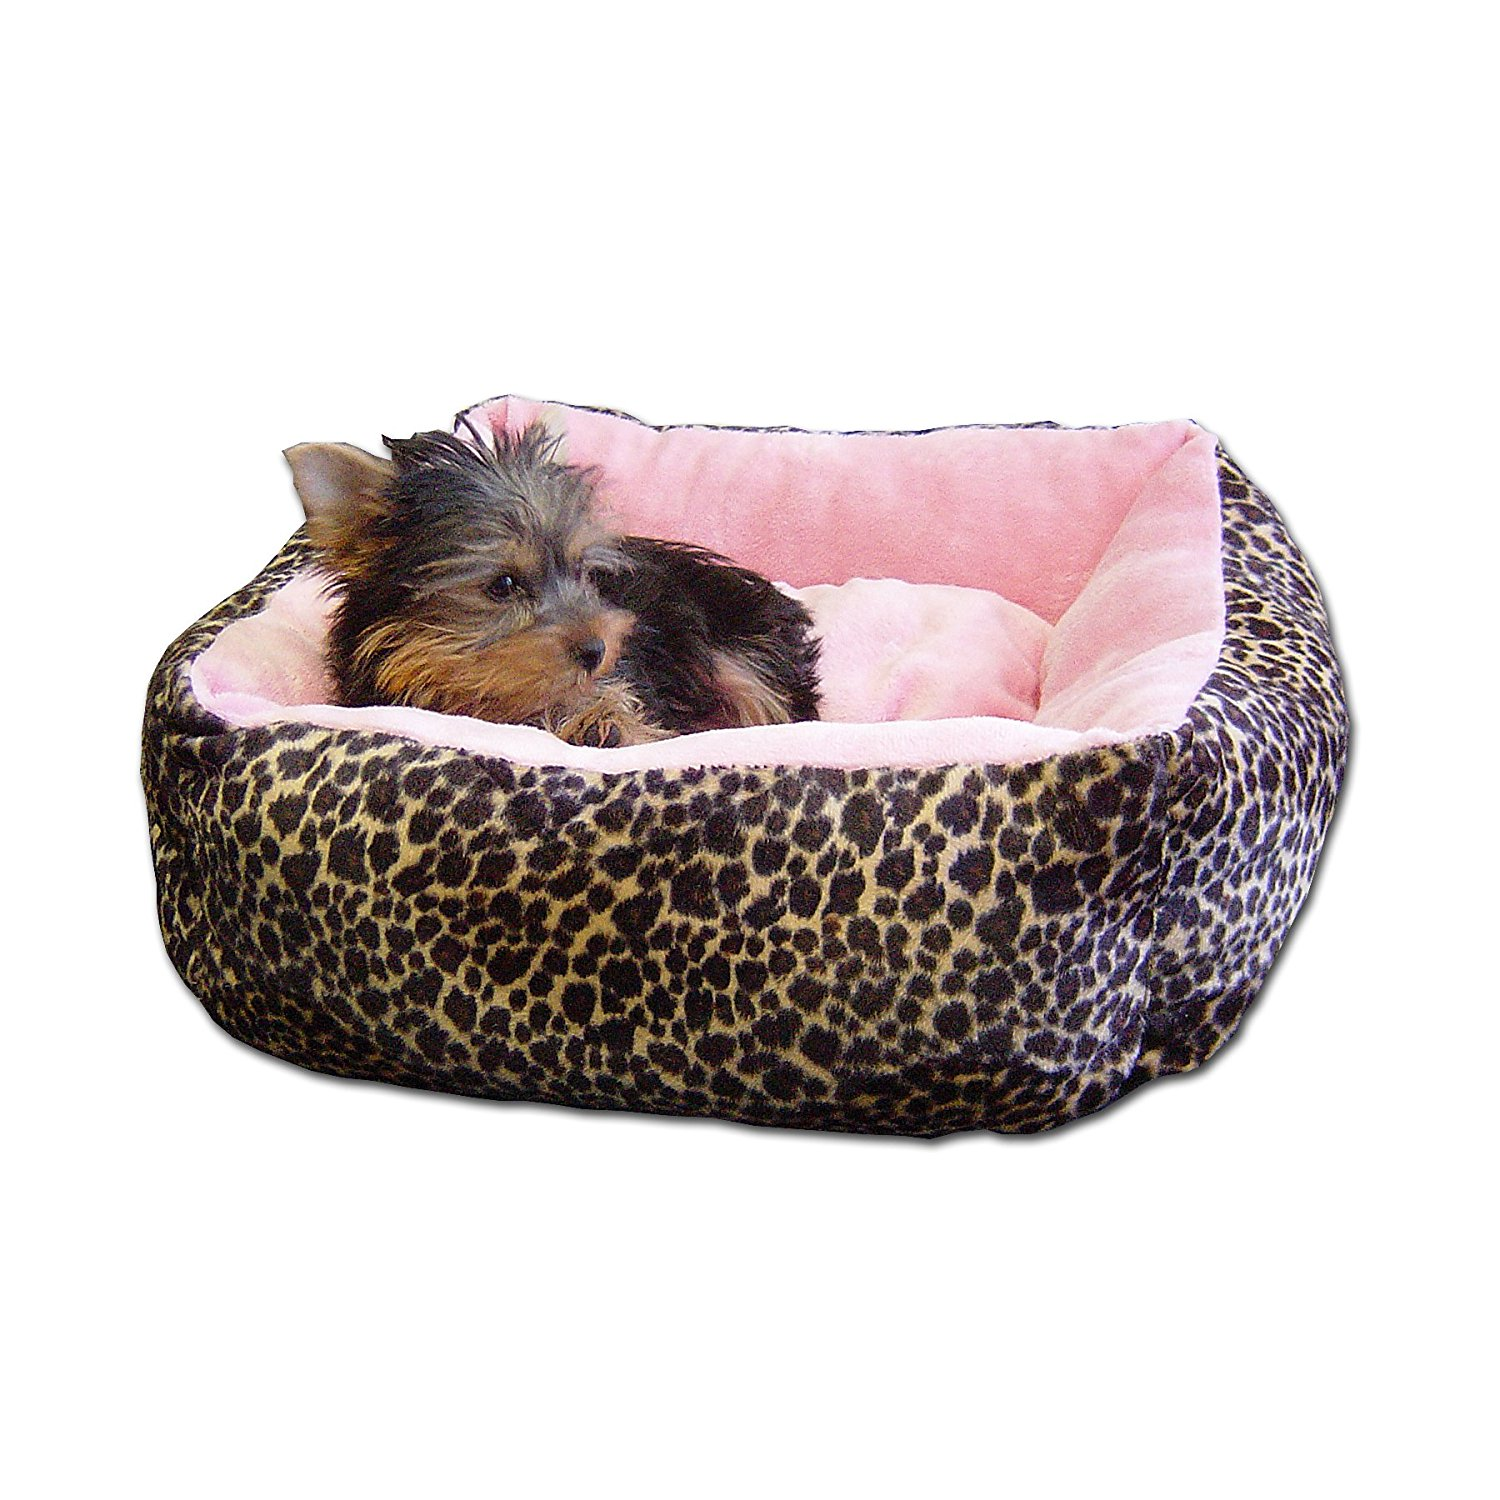 Anima Pink Ultra Plush Leopard Print Bed with Removable Pillow - Well Rested Dog